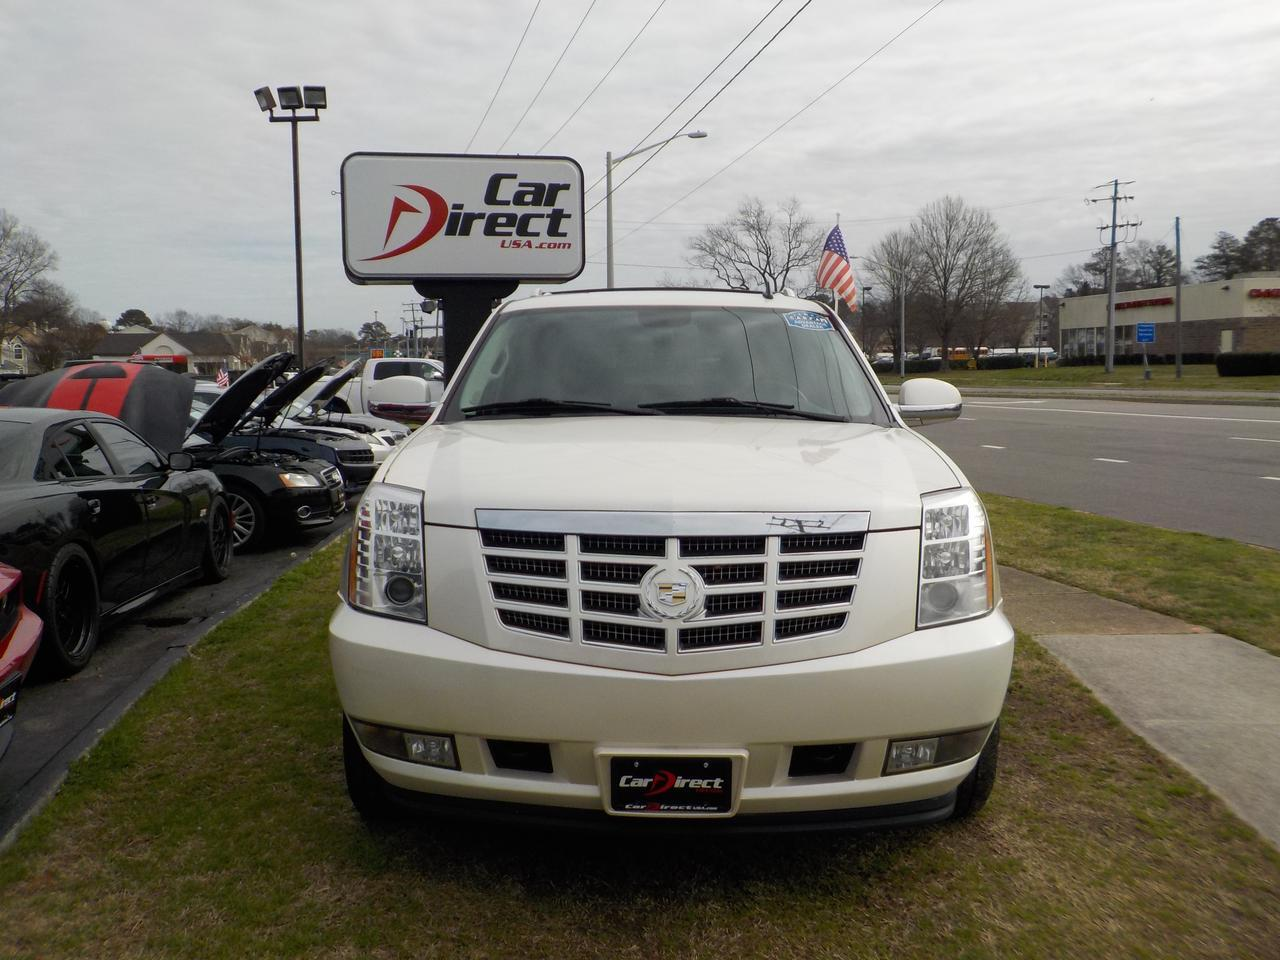 2012 CADILLAC ESCALADE ESV AWD, POWER RUNNING BOARDS, PARKING SENSORS, SUNROOF, NAVIGATION, DVD, 3RD ROW SEATING, TOW! Virginia Beach VA